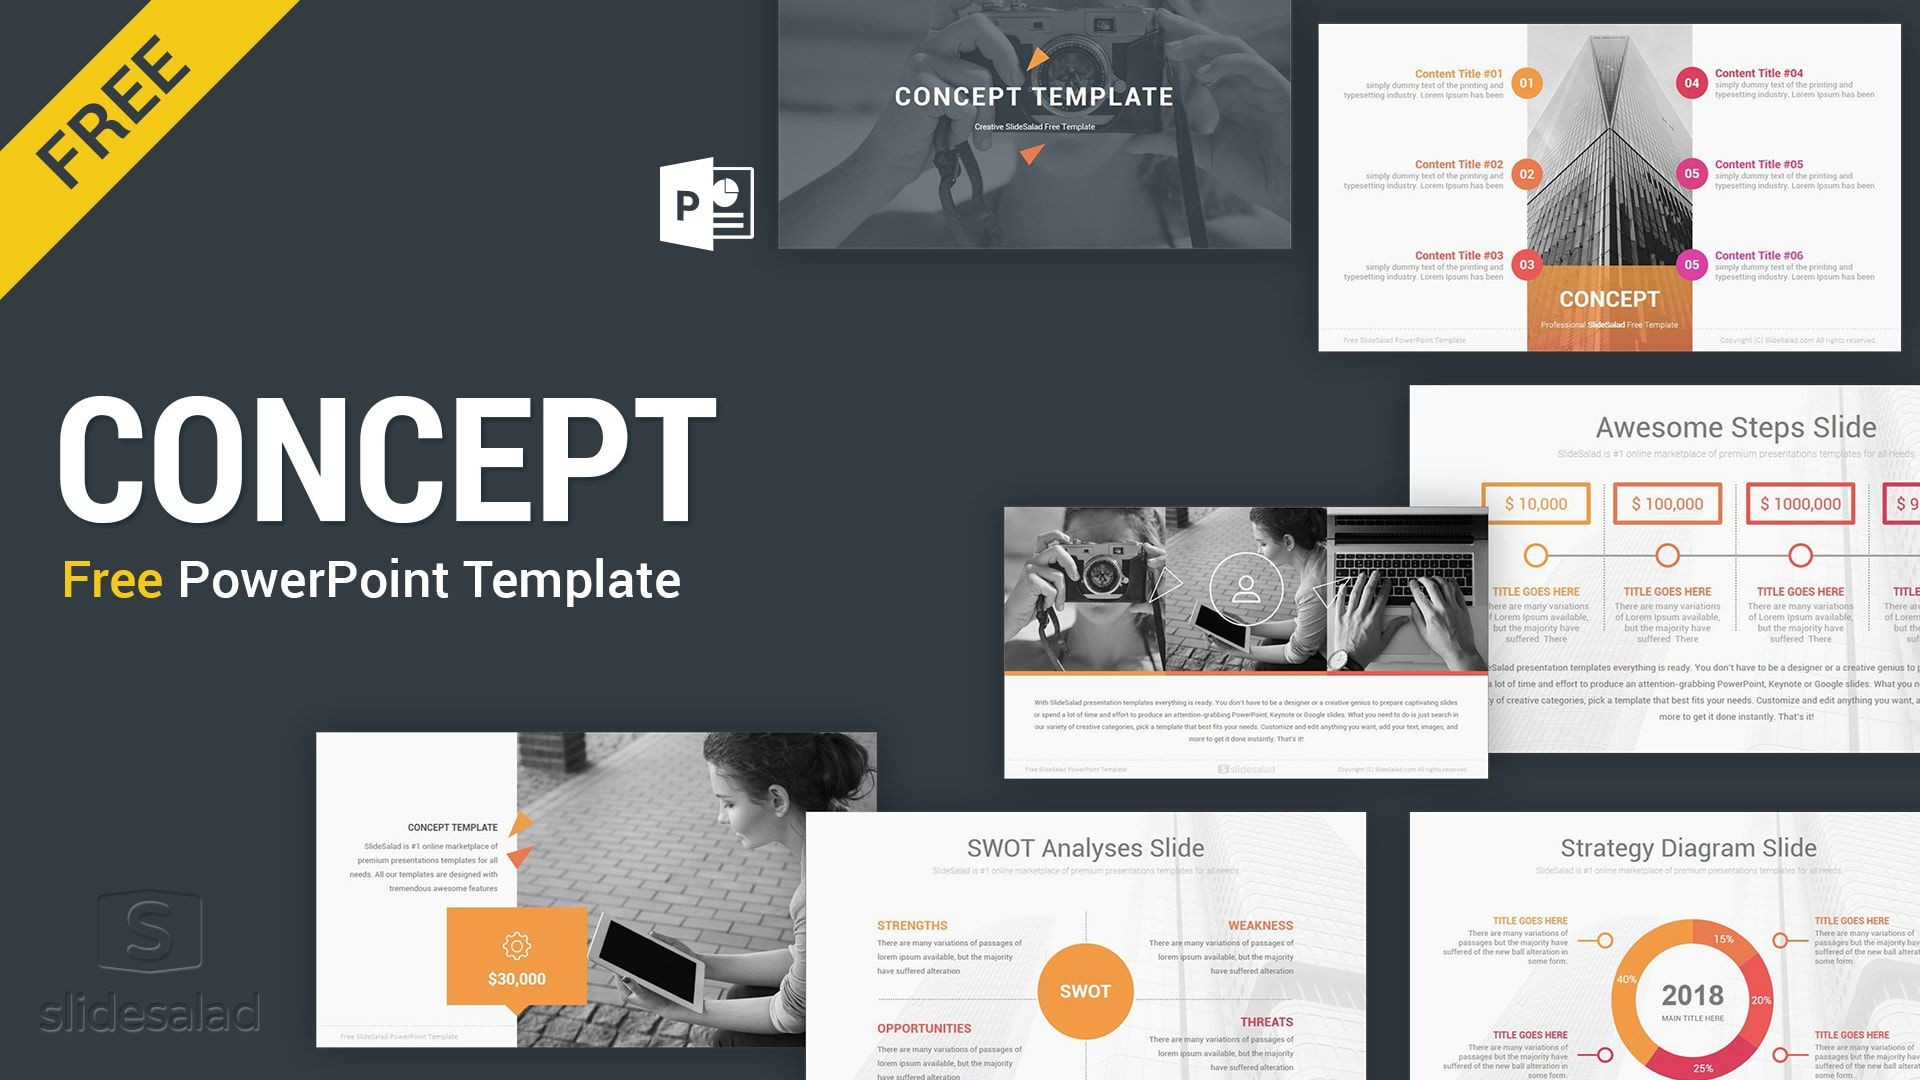 002 Singular Download Free Powerpoint Template Highest Quality  Templates Professional 2018 Ppt For Busines Presentation Education /1920